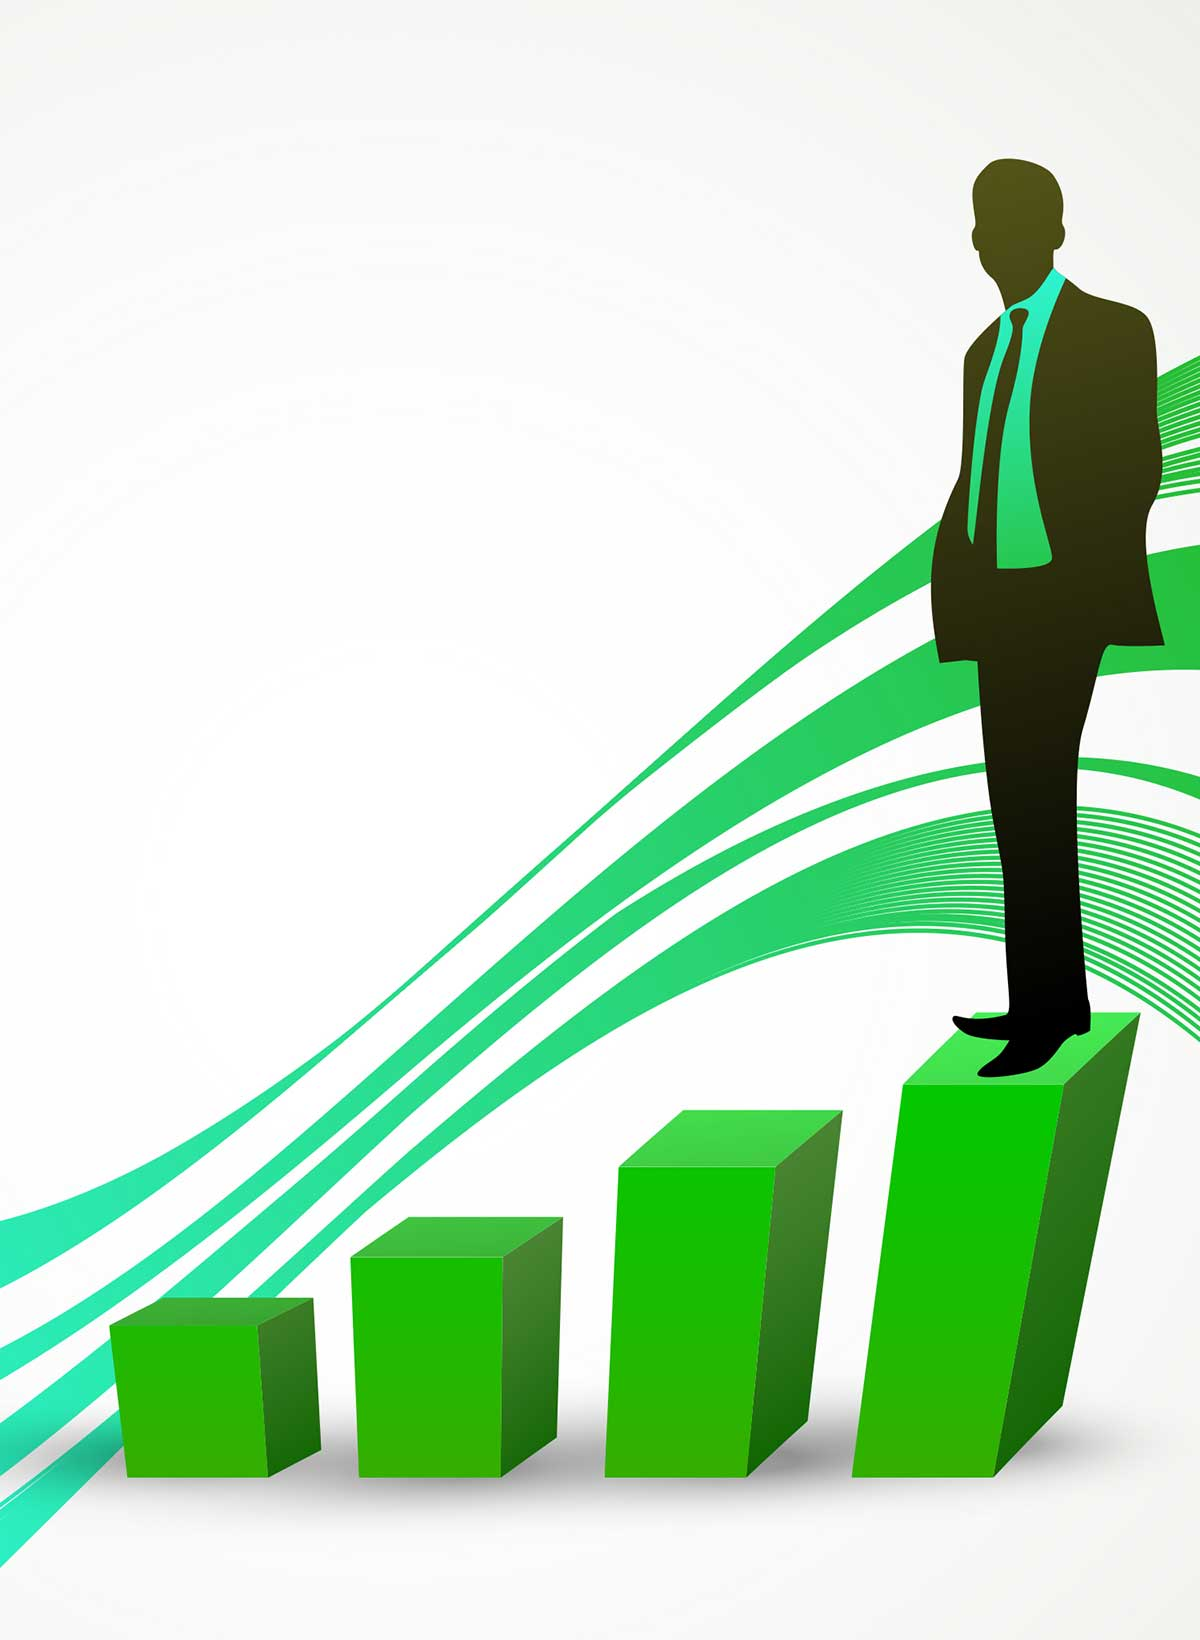 eCommerce business growth